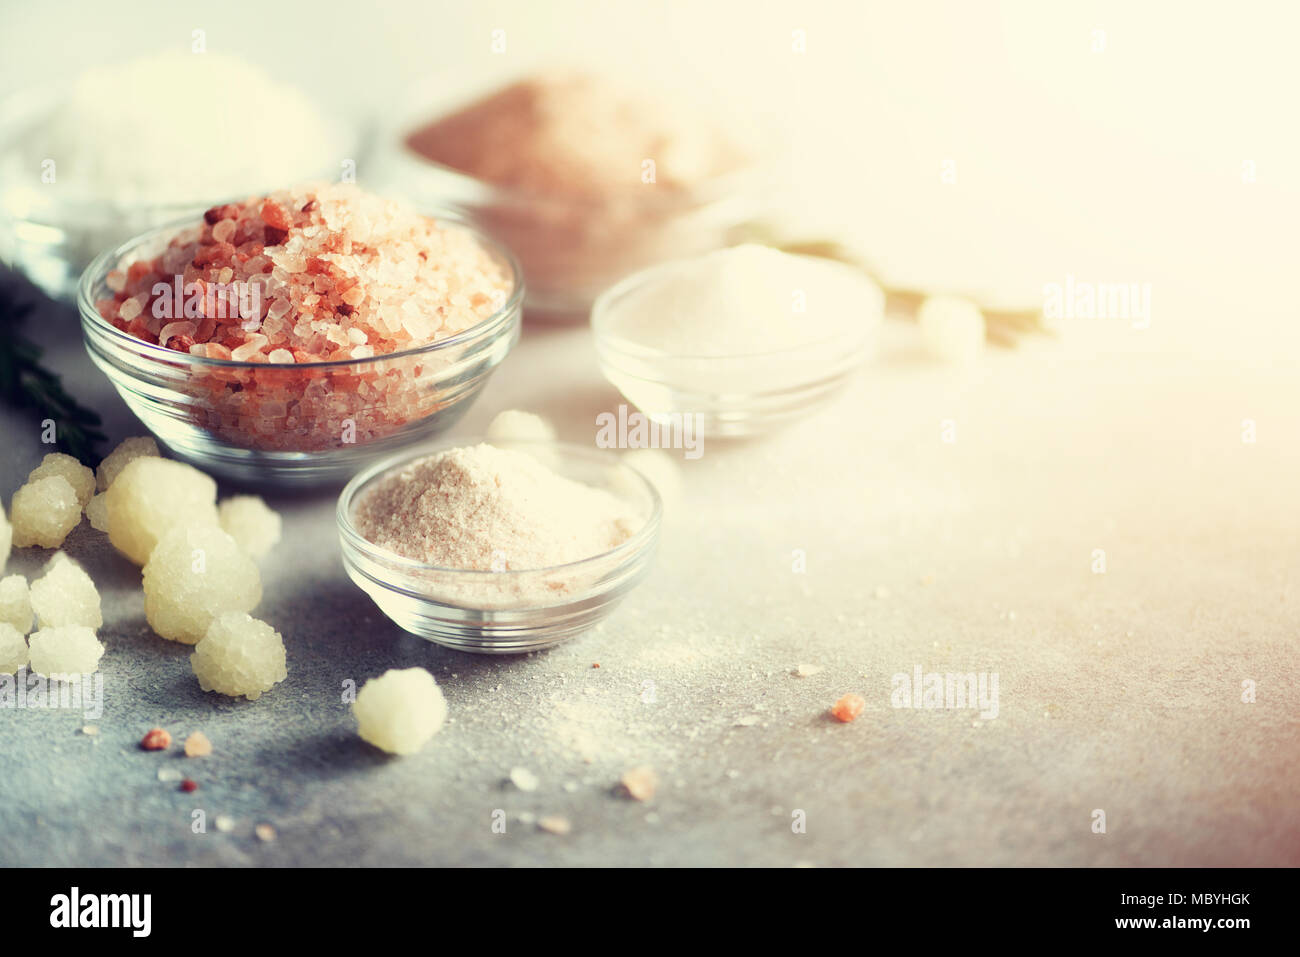 Mix of different salt types on grey concrete background. Sea salts, black and pink Himalayan salt crystals, powder, rosemary. Salt crystal balls from Dead sea. Copy space. Toned sunlight effect - Stock Image